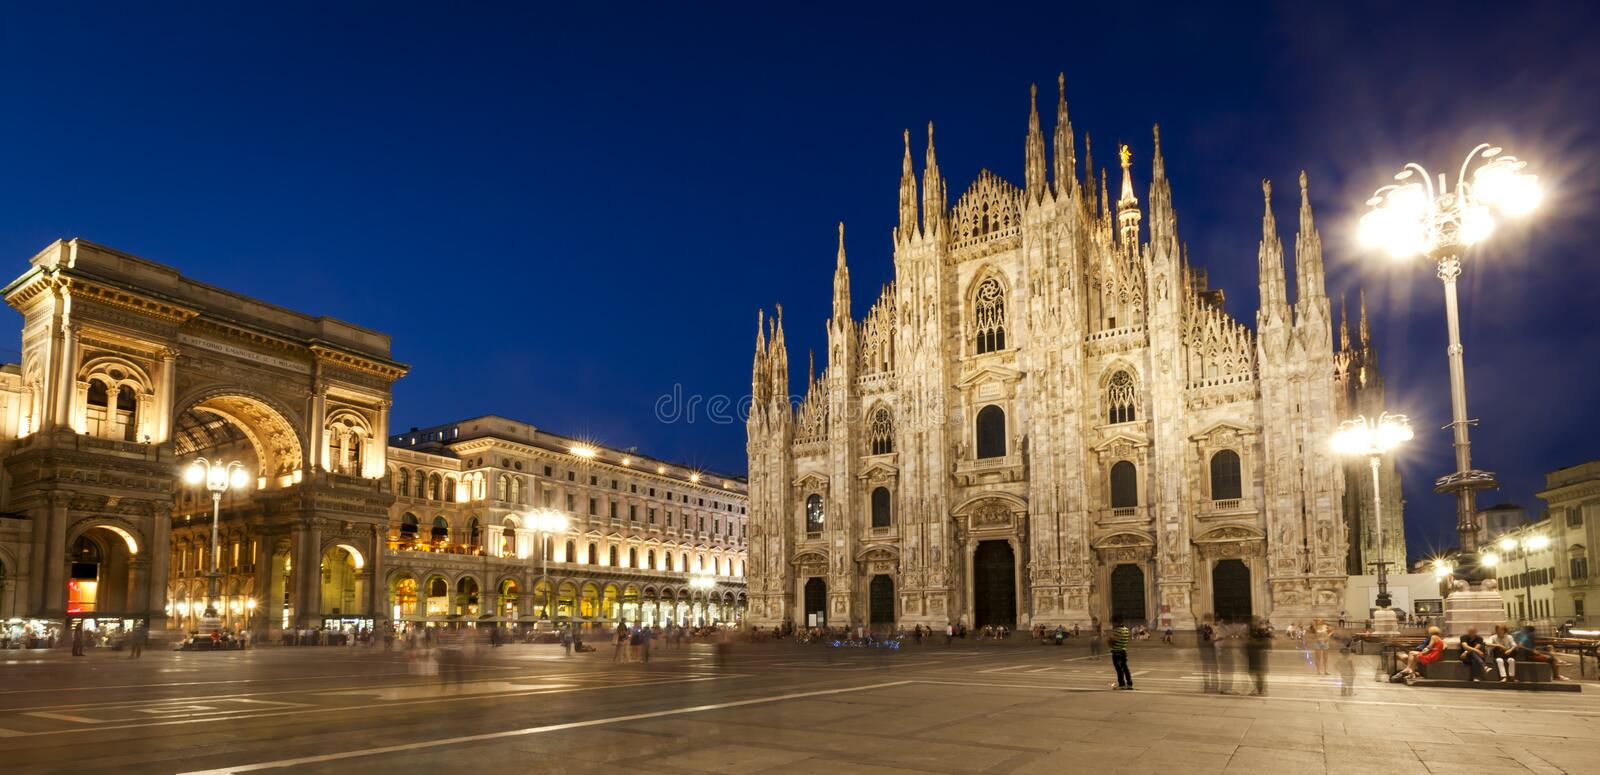 Milan Cathedral Night-meningspanorama royalty-vrije stock afbeelding